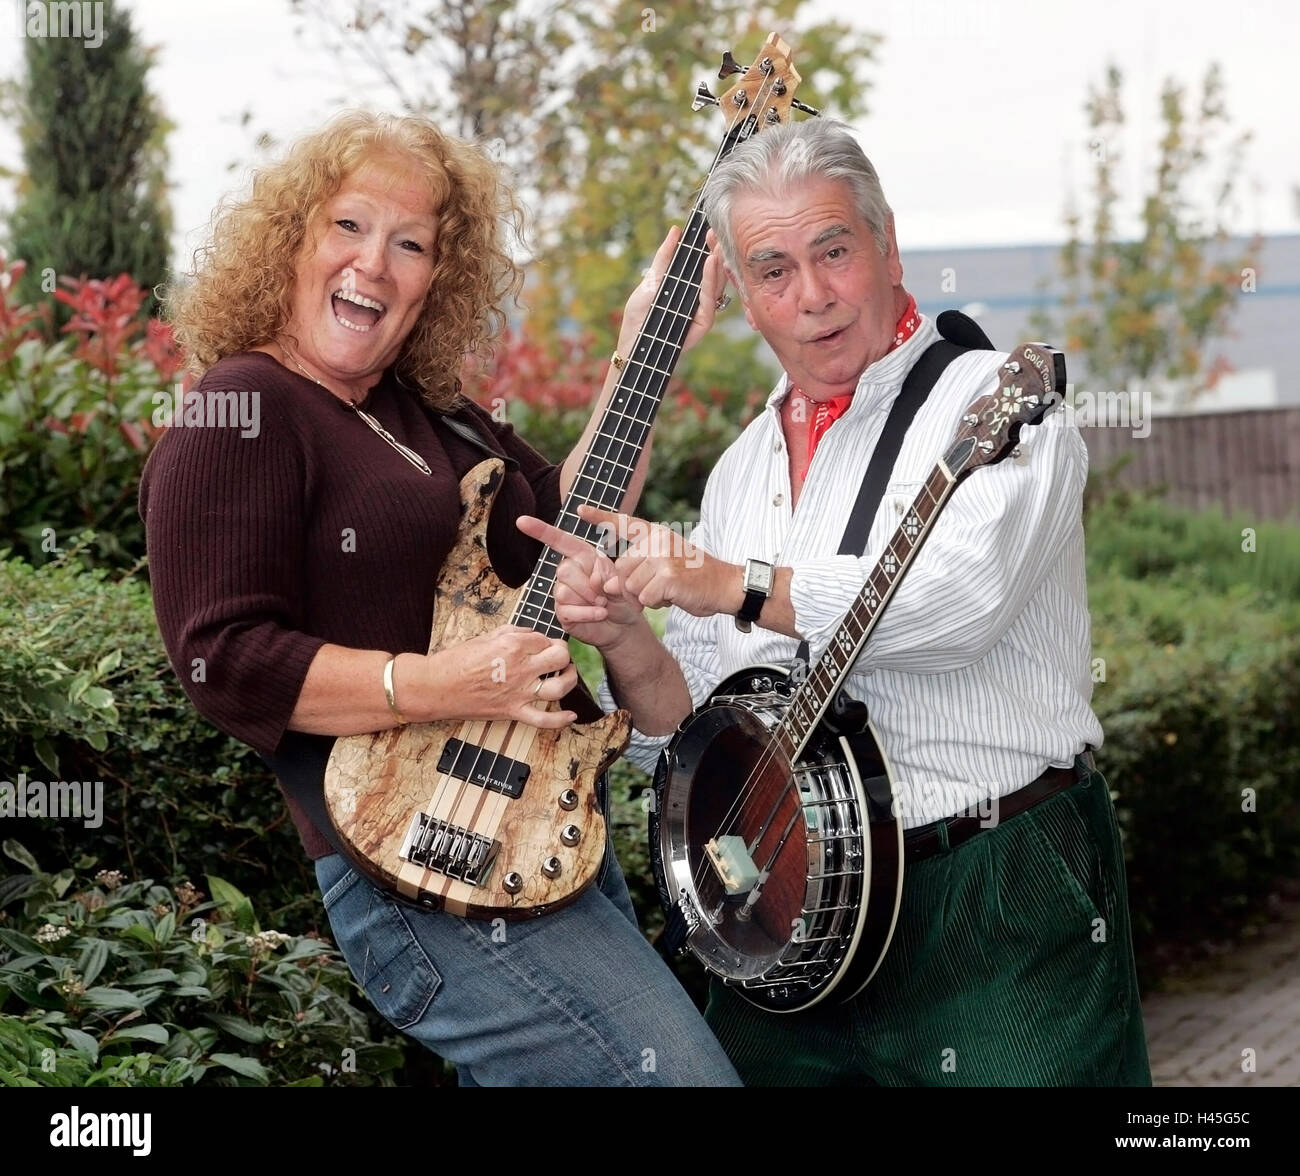 pete-budd-of-the-wurzels-gives-sue-wrigh